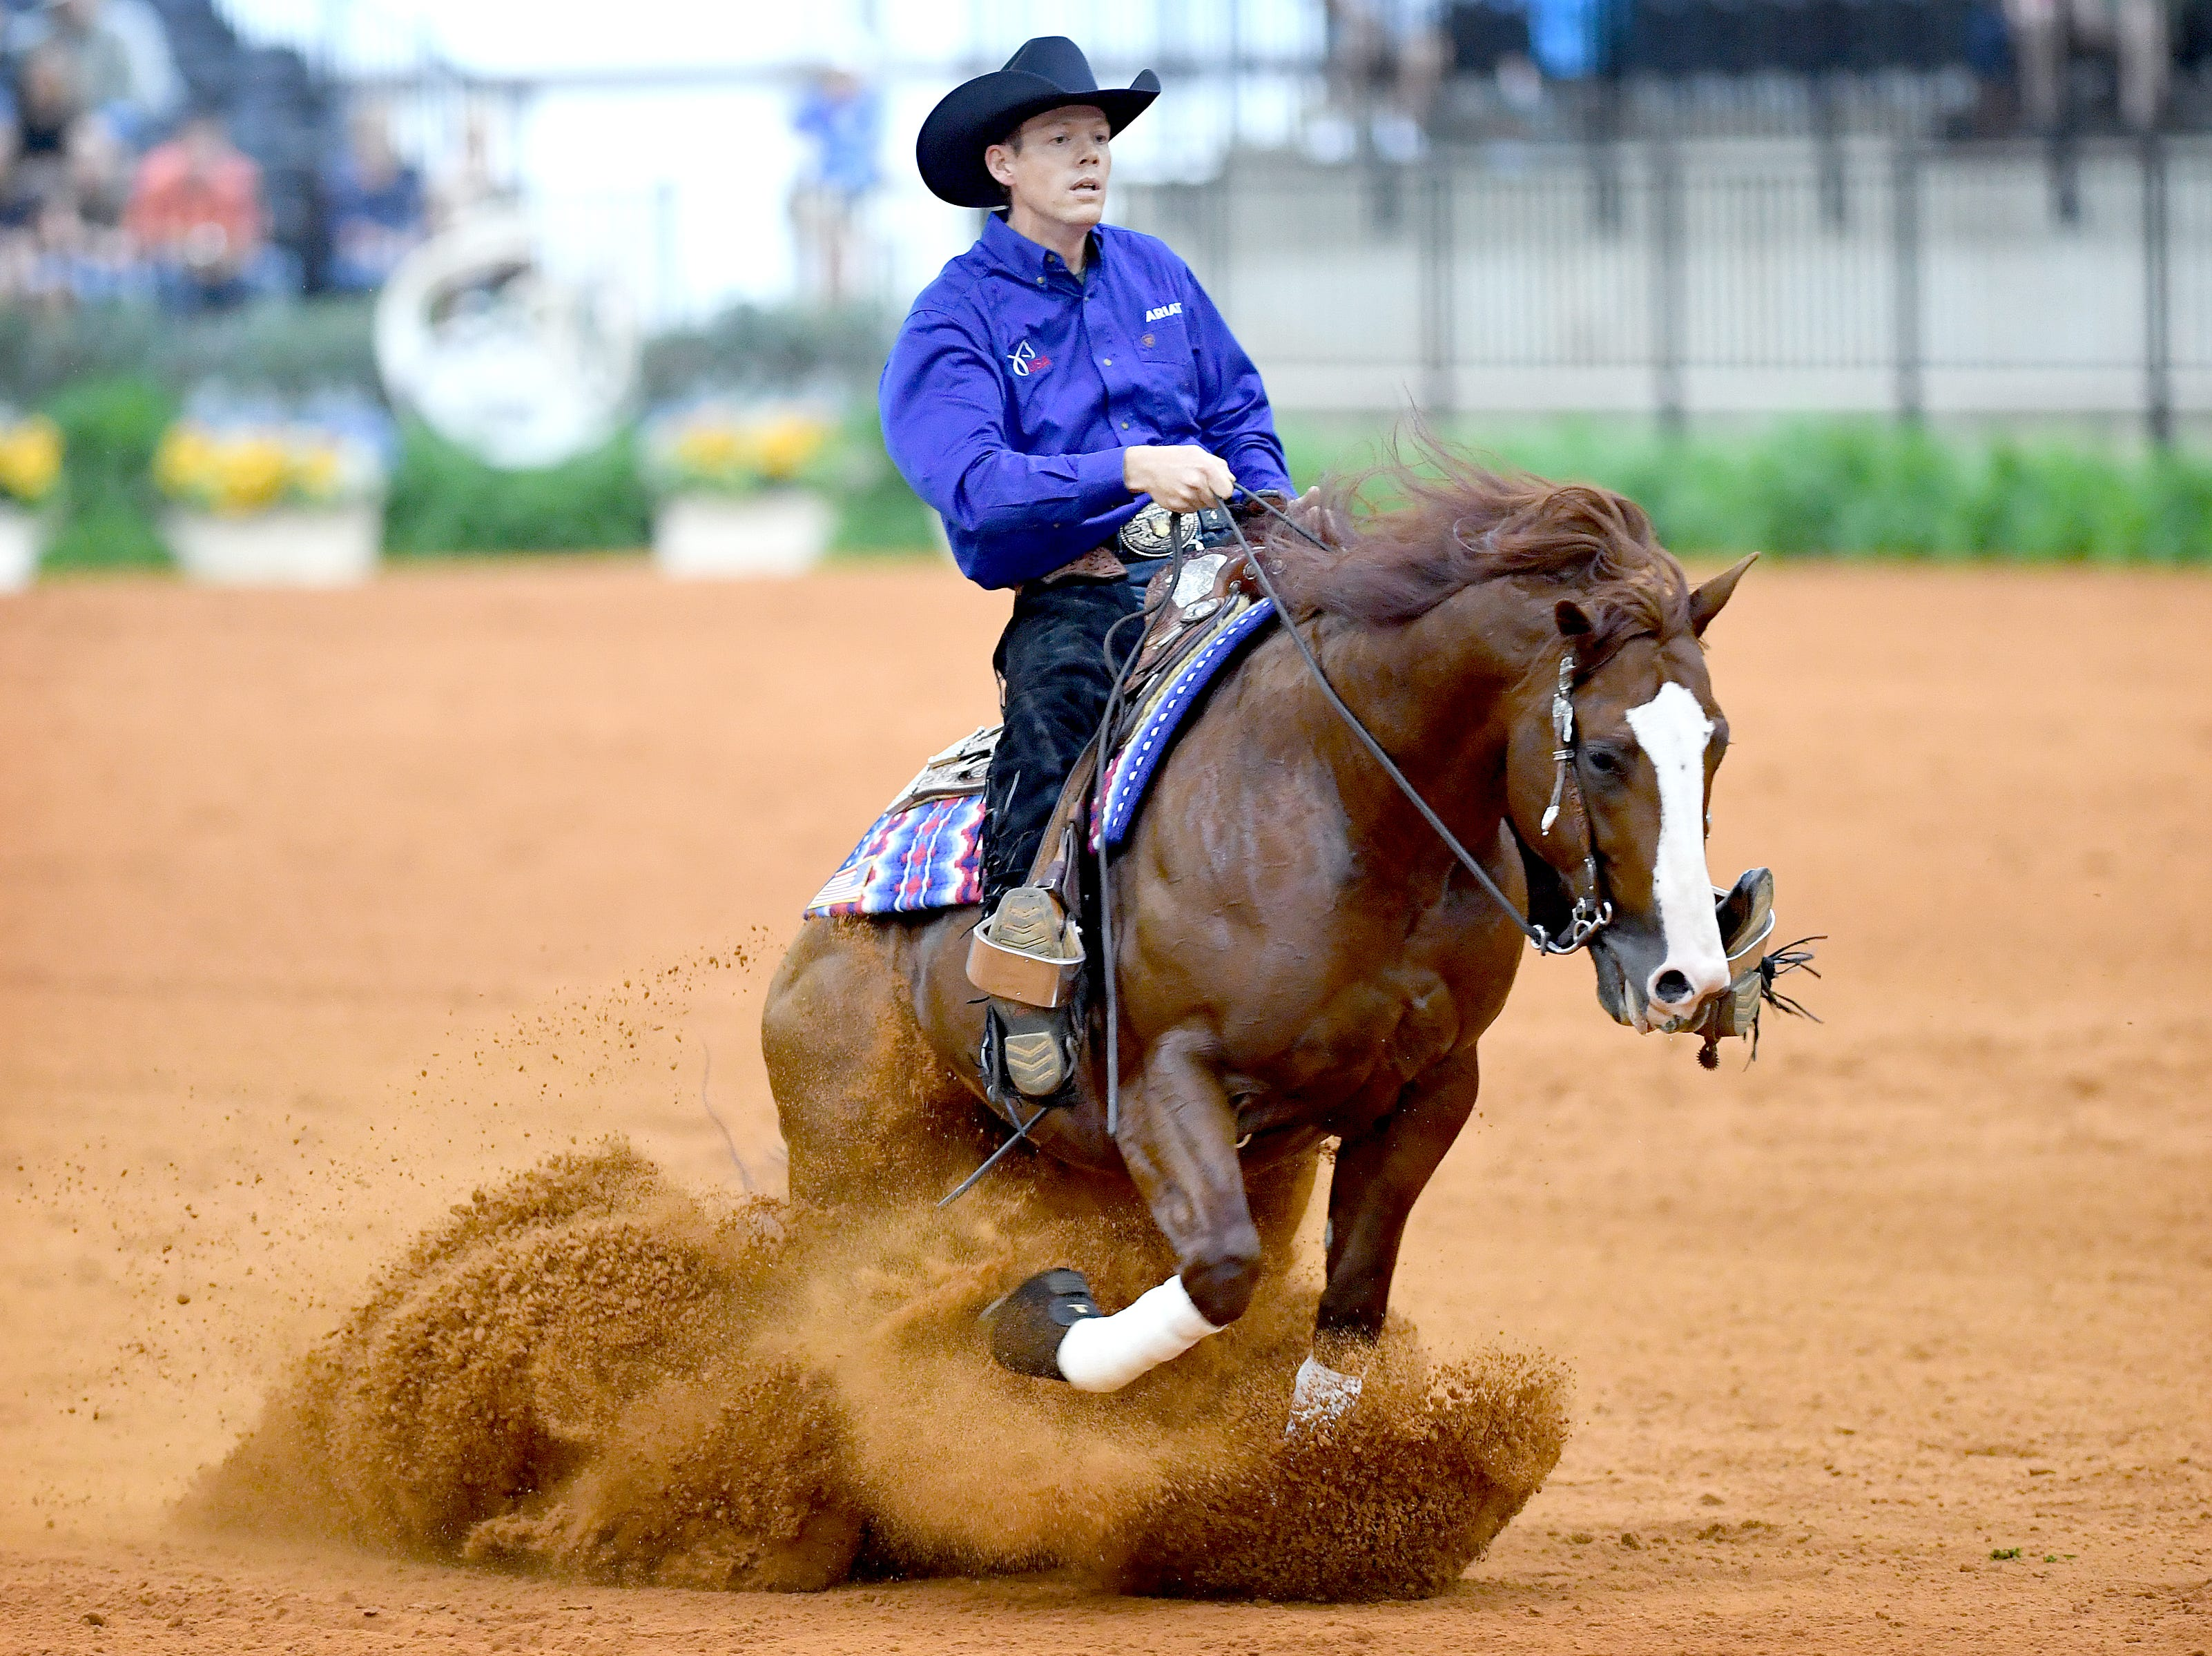 American Gabe Hutchins, on his horse, FM Shine N Tag Chex, competes in the reining competition during the FEI World Equestrian Games at the Tryon International Equestrian Center on Sept. 12, 2018.